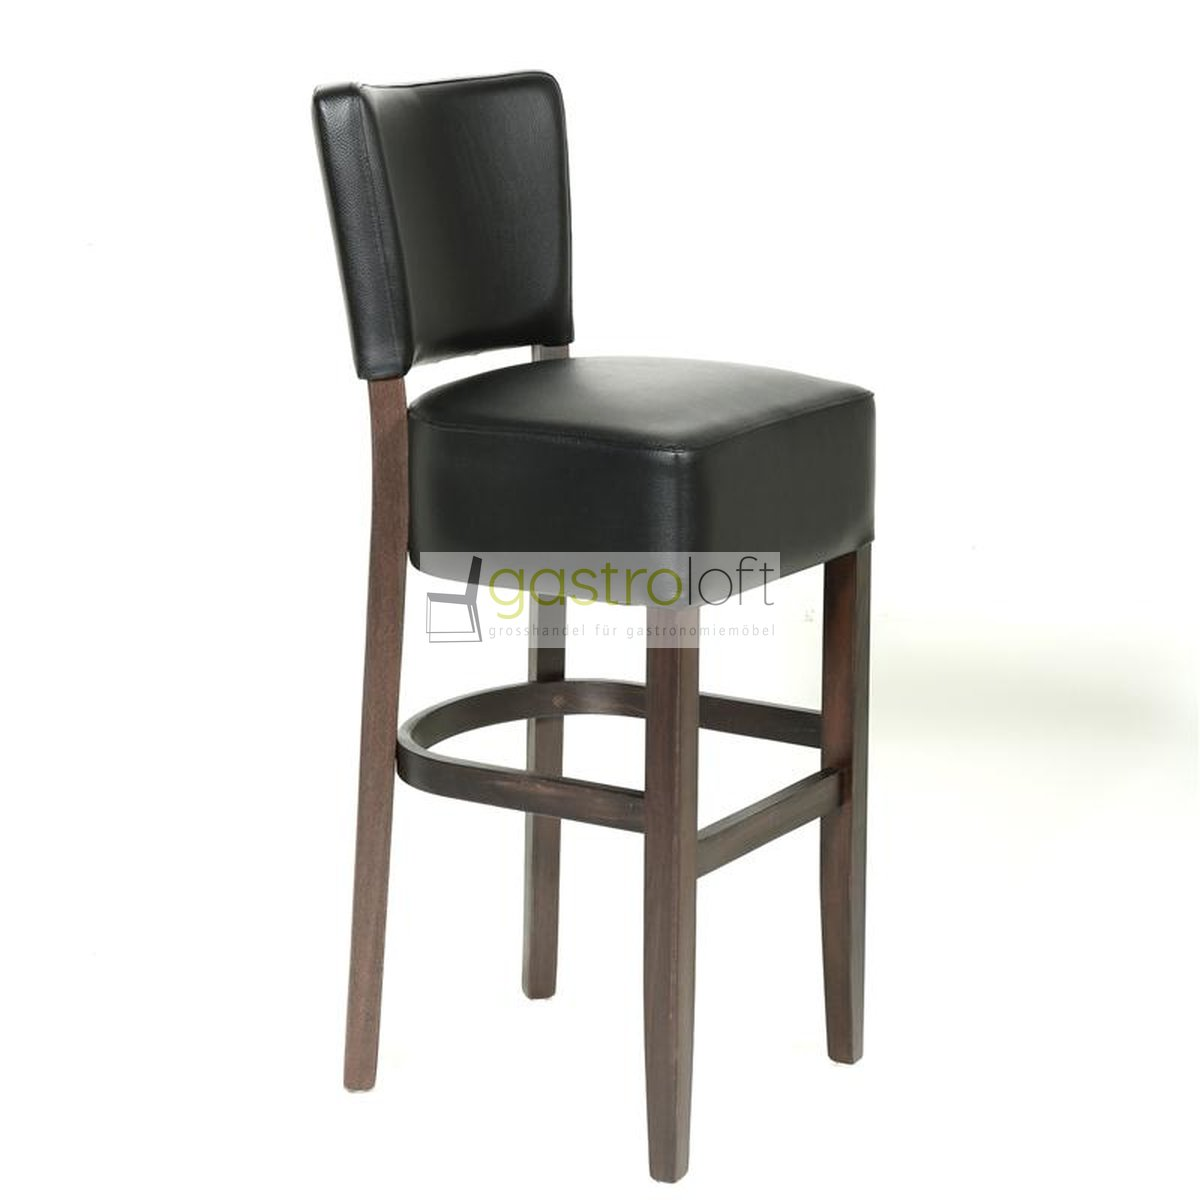 b1 bar gastronomie barhocker select color. Black Bedroom Furniture Sets. Home Design Ideas